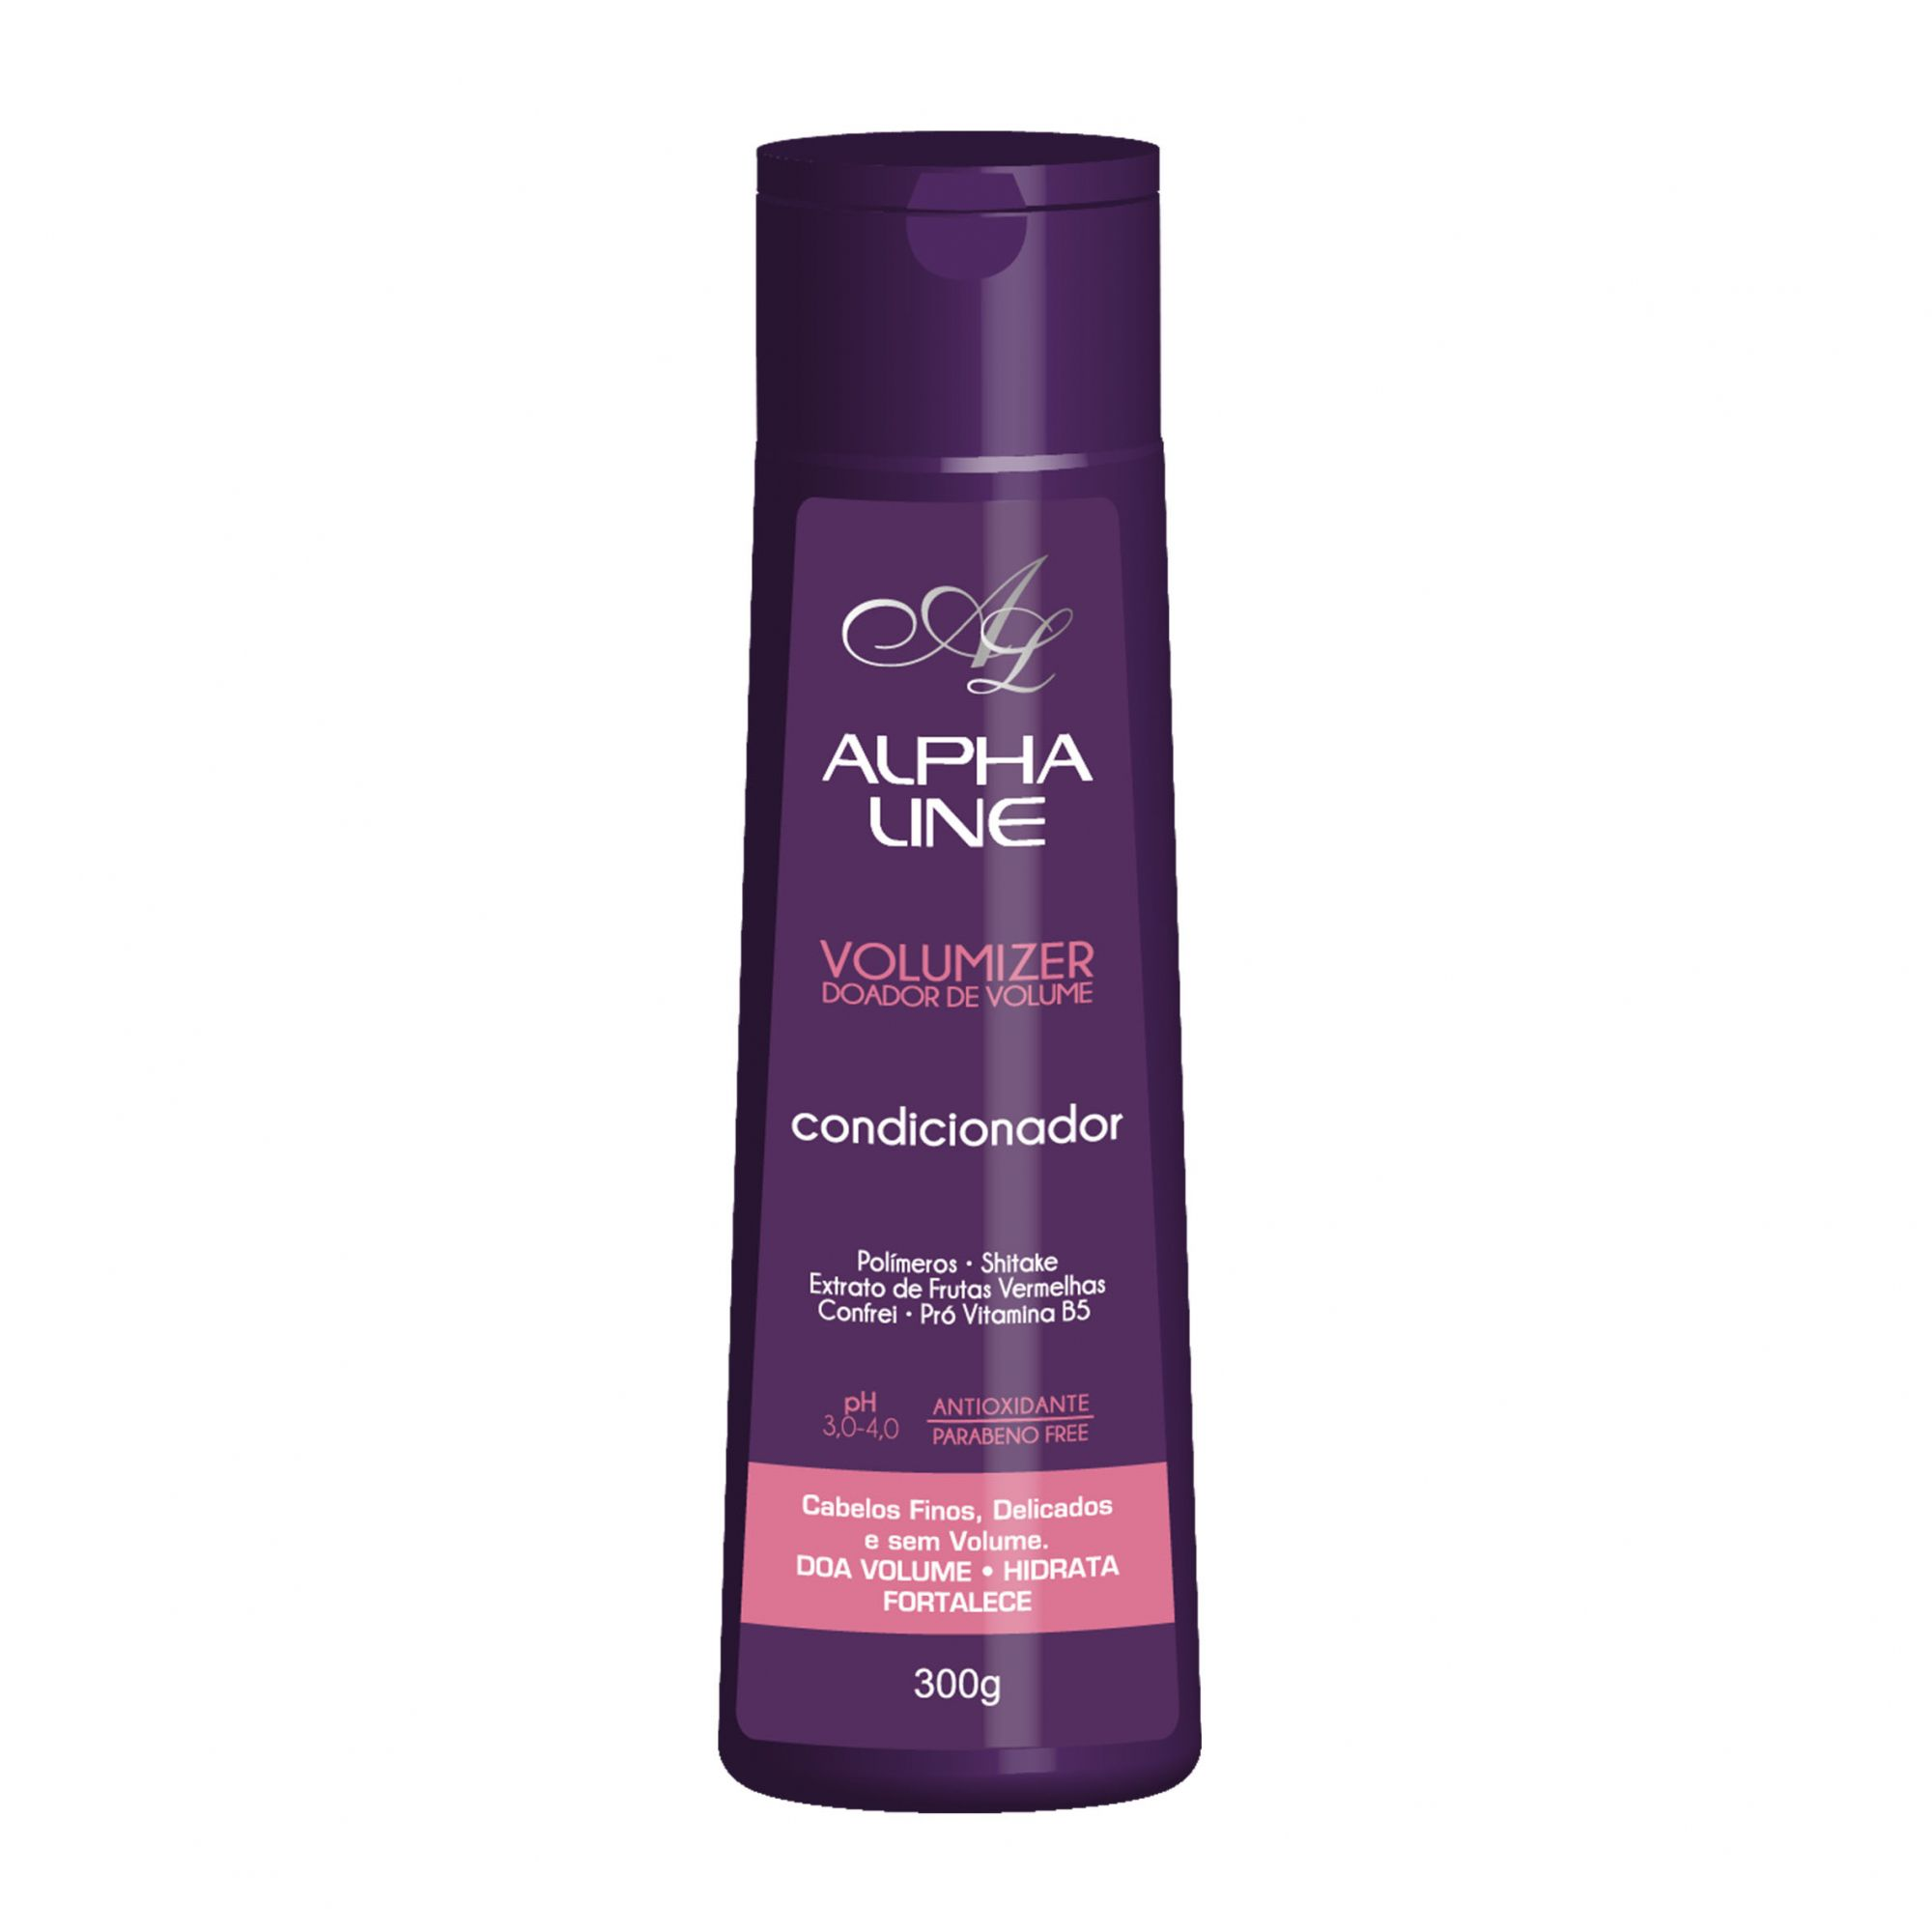 Alpha Line Condicionador Volumizer Doador de Volume 300ml.